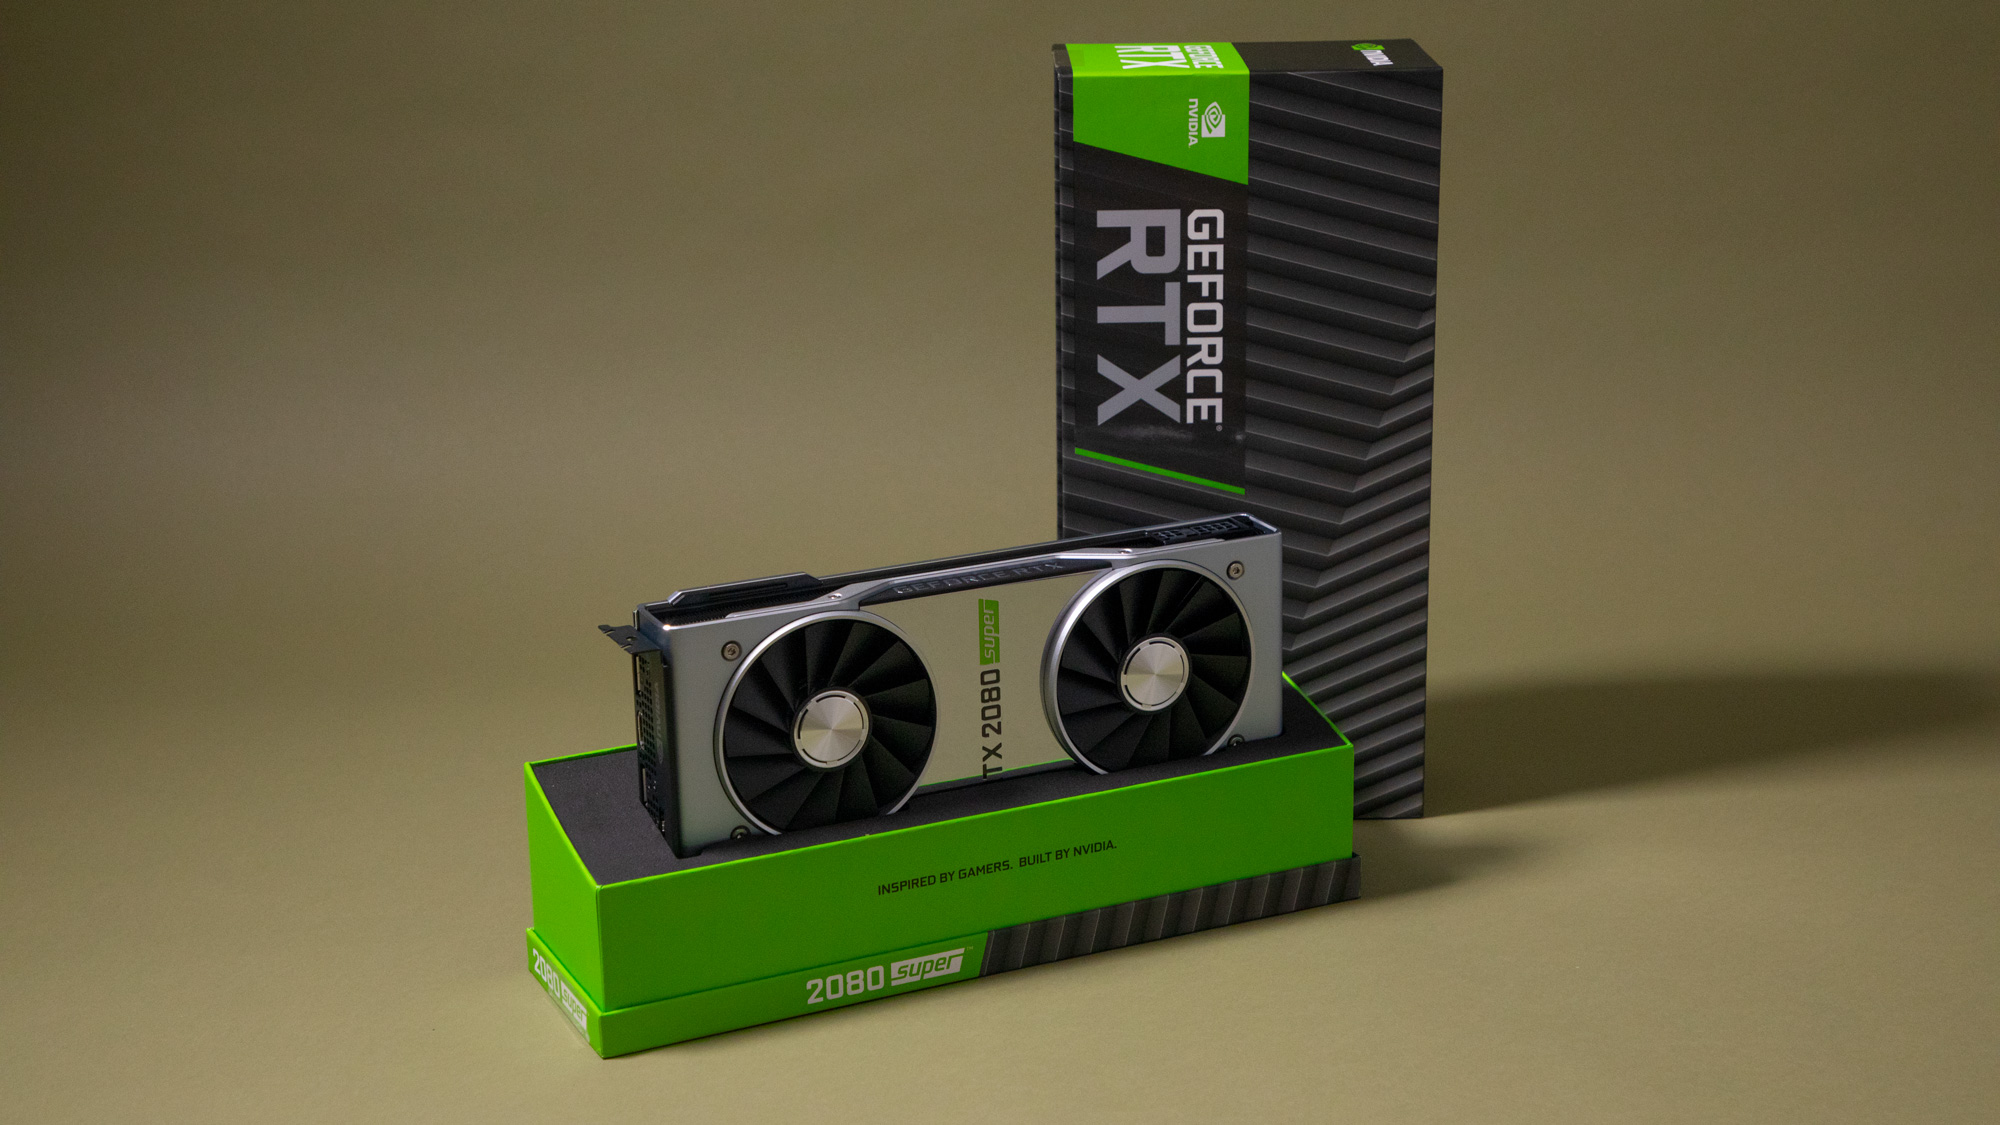 X6jEZjYp2iVvokuiL652af - Nvidia GeForce RTX 2080 Super vs RTX 2080: what has changed?